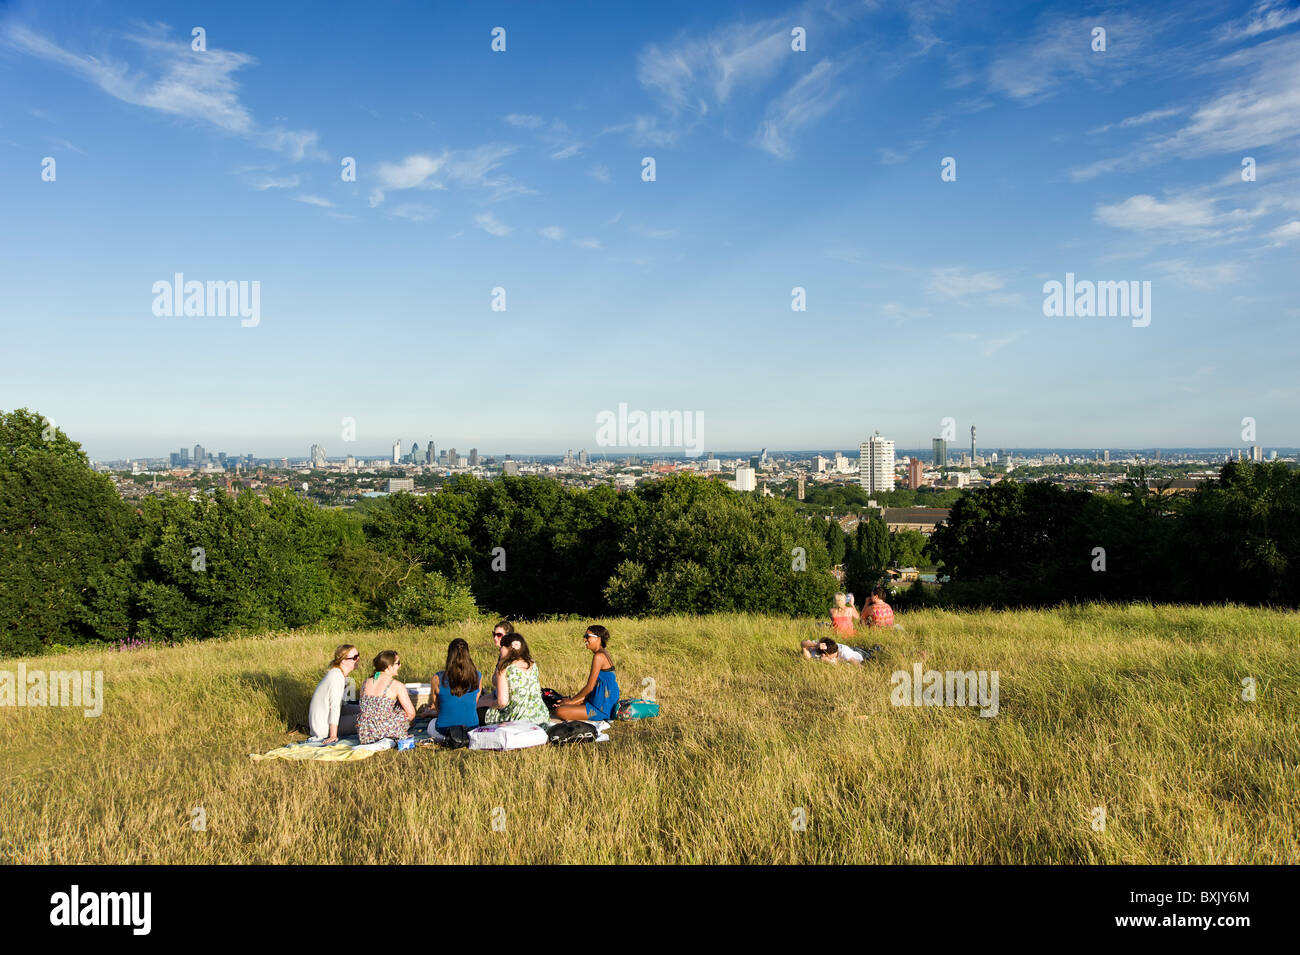 People at the top of Parliament Hill, Hampstead Heath, London, England, UK - Stock Image